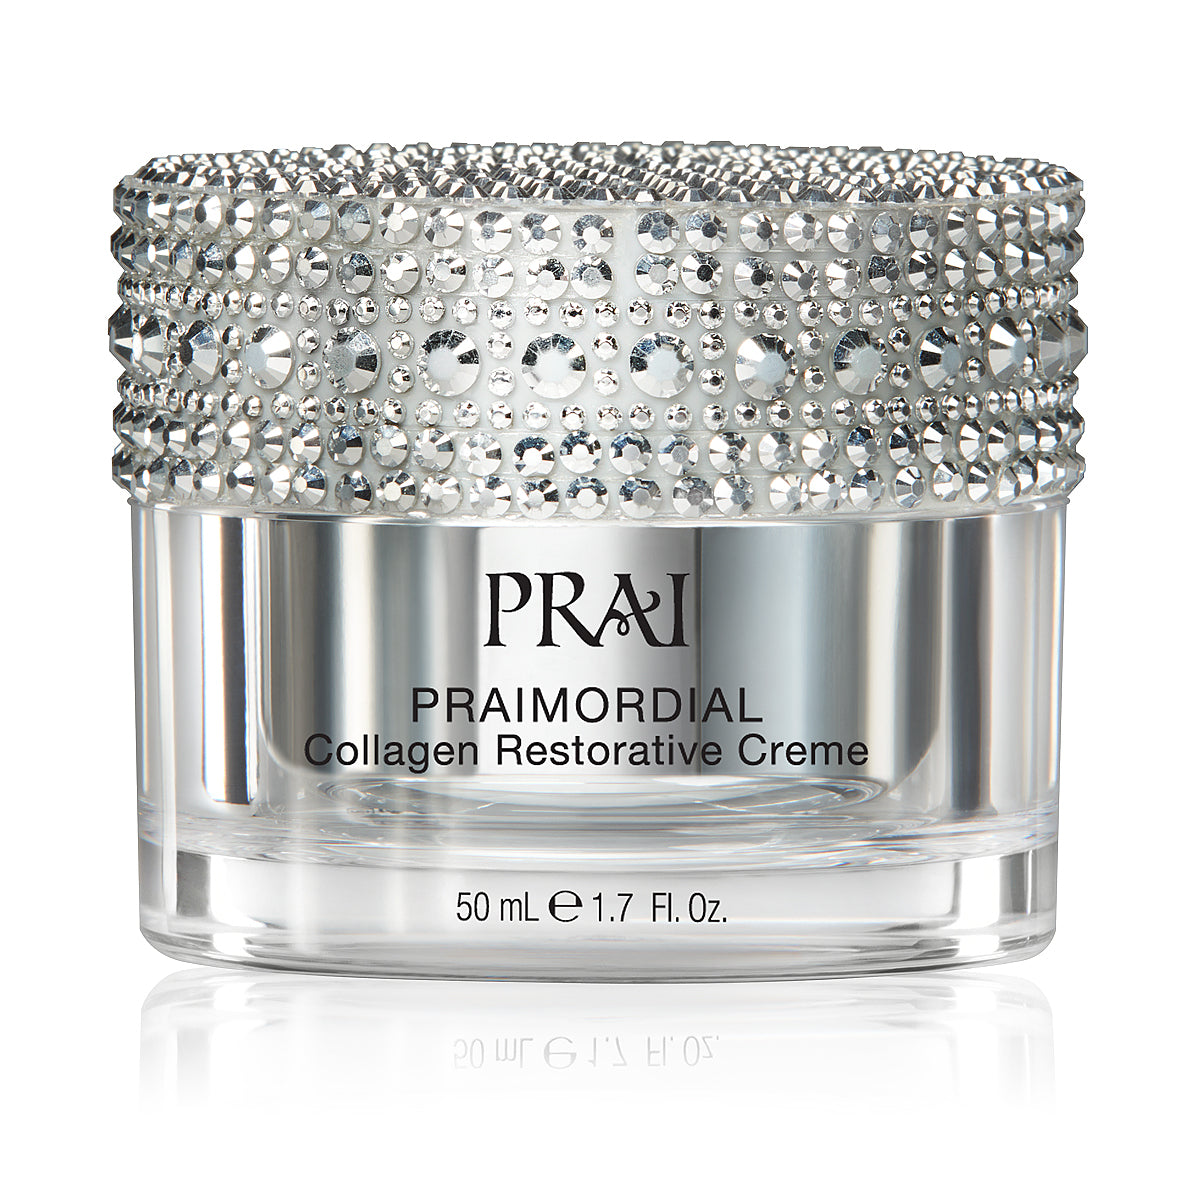 PRAI Beauty Praimordial Collagen Restorative Creme